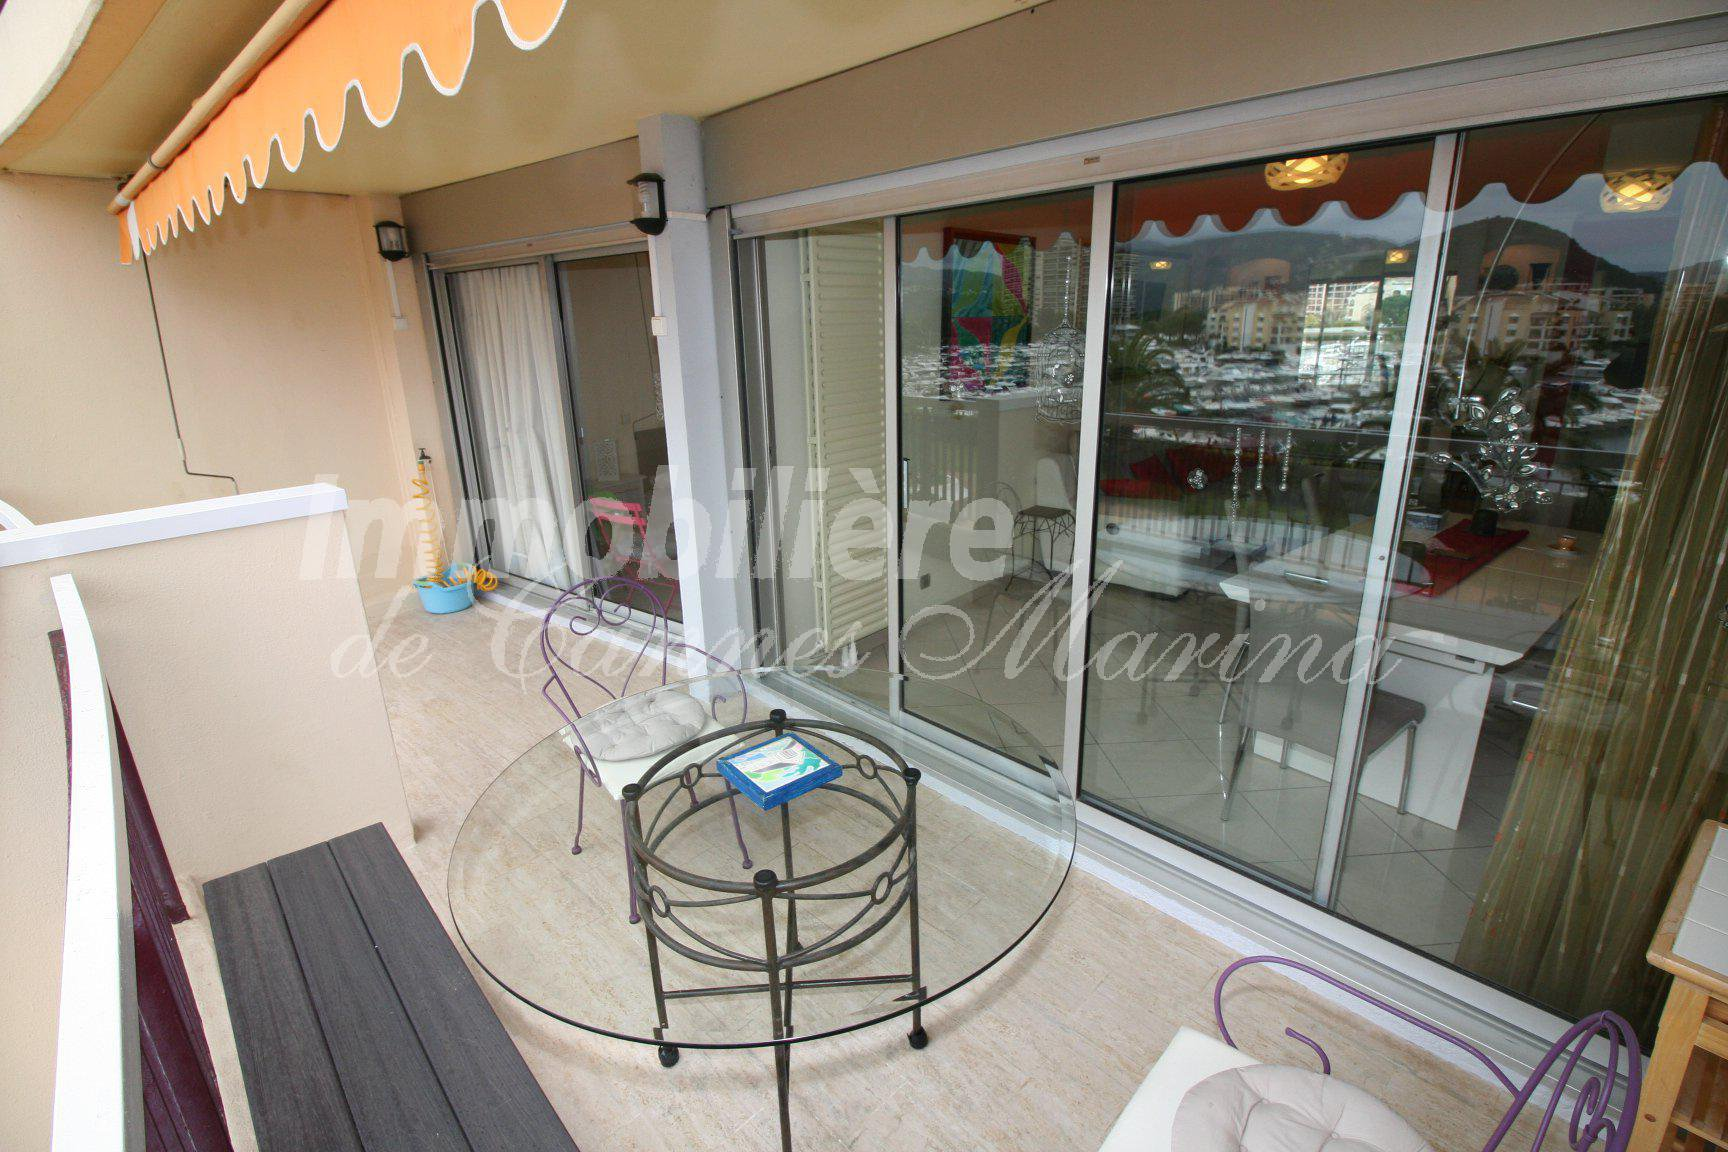 FABULOUS LARGE 3 BEDROOM APARTMENT ON THE MARINA - FULL SOUTH SUN EXPOSURE